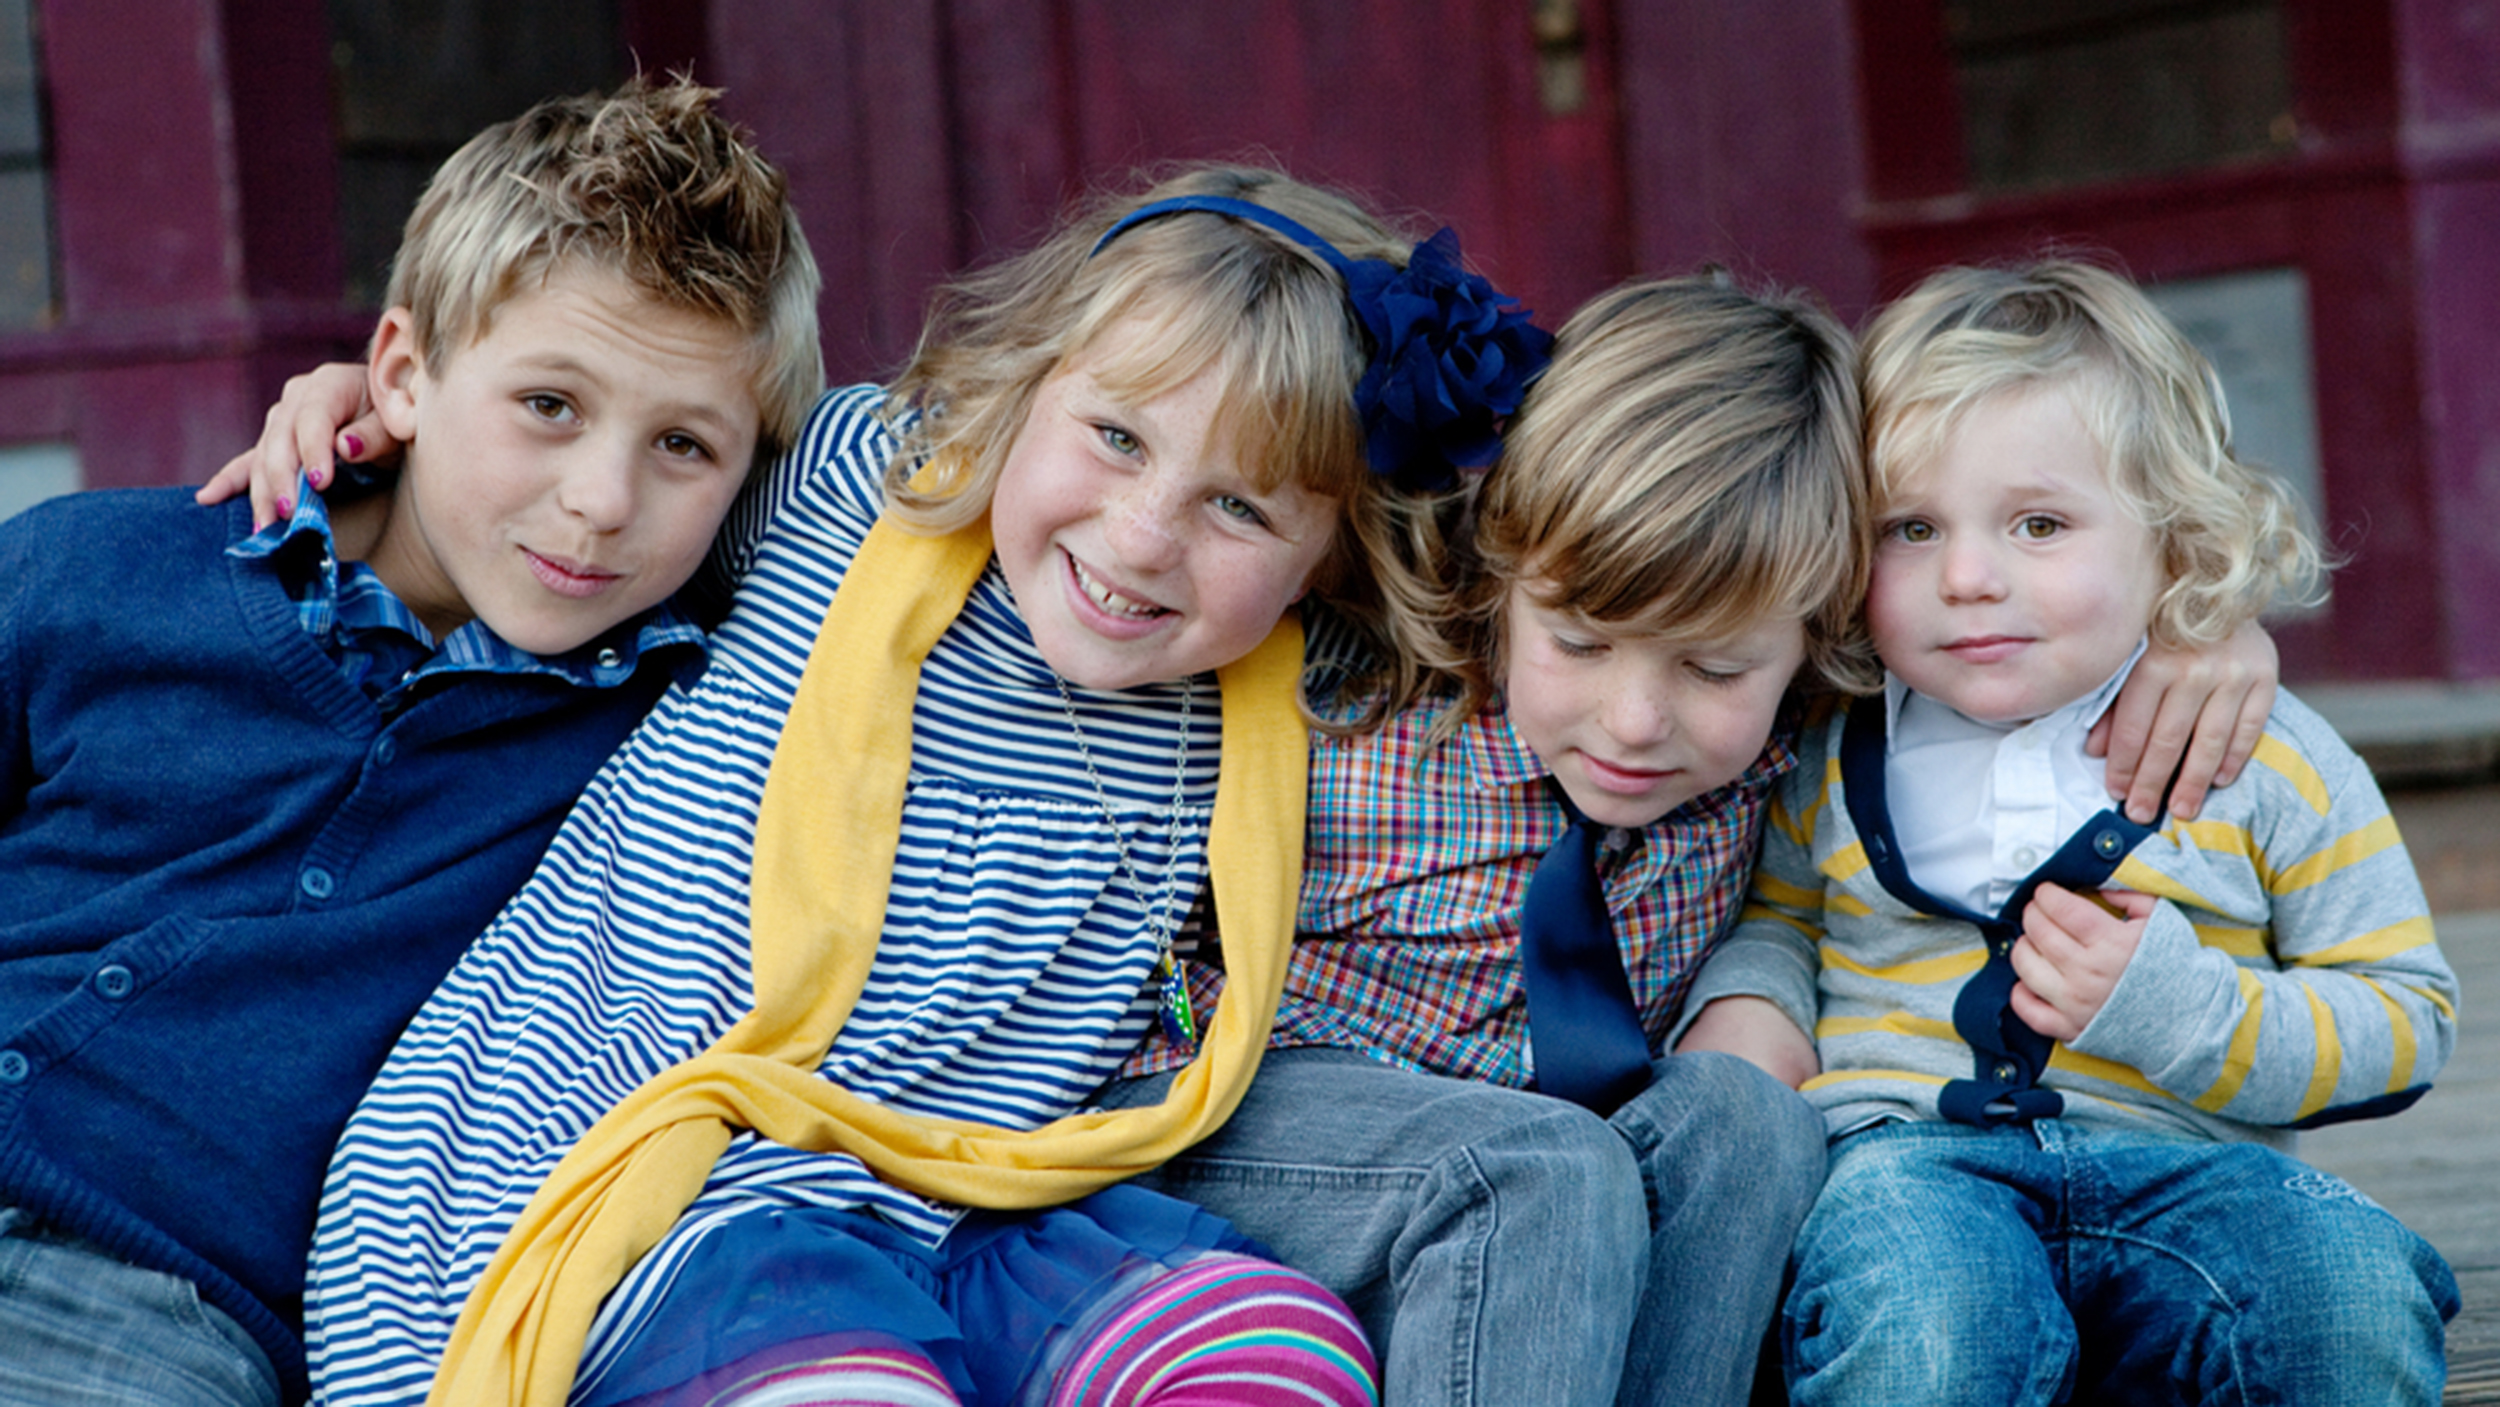 children and their birth order Other things that should be considered along with birth order are the spacing of years between the siblings, the total number of children, and the parent's situation over time the influence of birth order on the development of personality has long been a controversial issue in psychology.